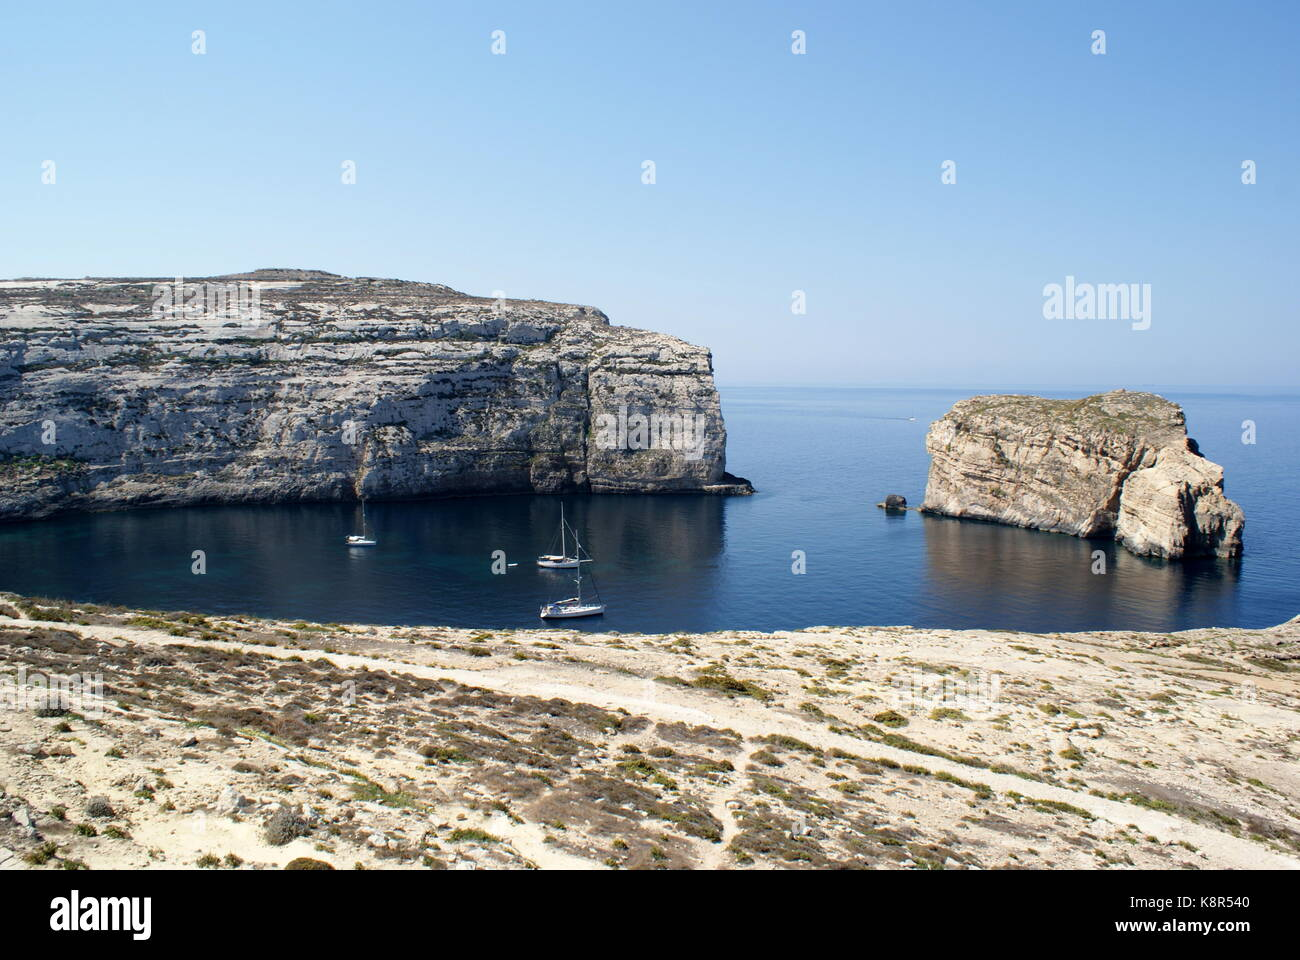 Sailing yachts at anchor in Dwejra bay, San Lawrenz, Gozo, Malta - Stock Image